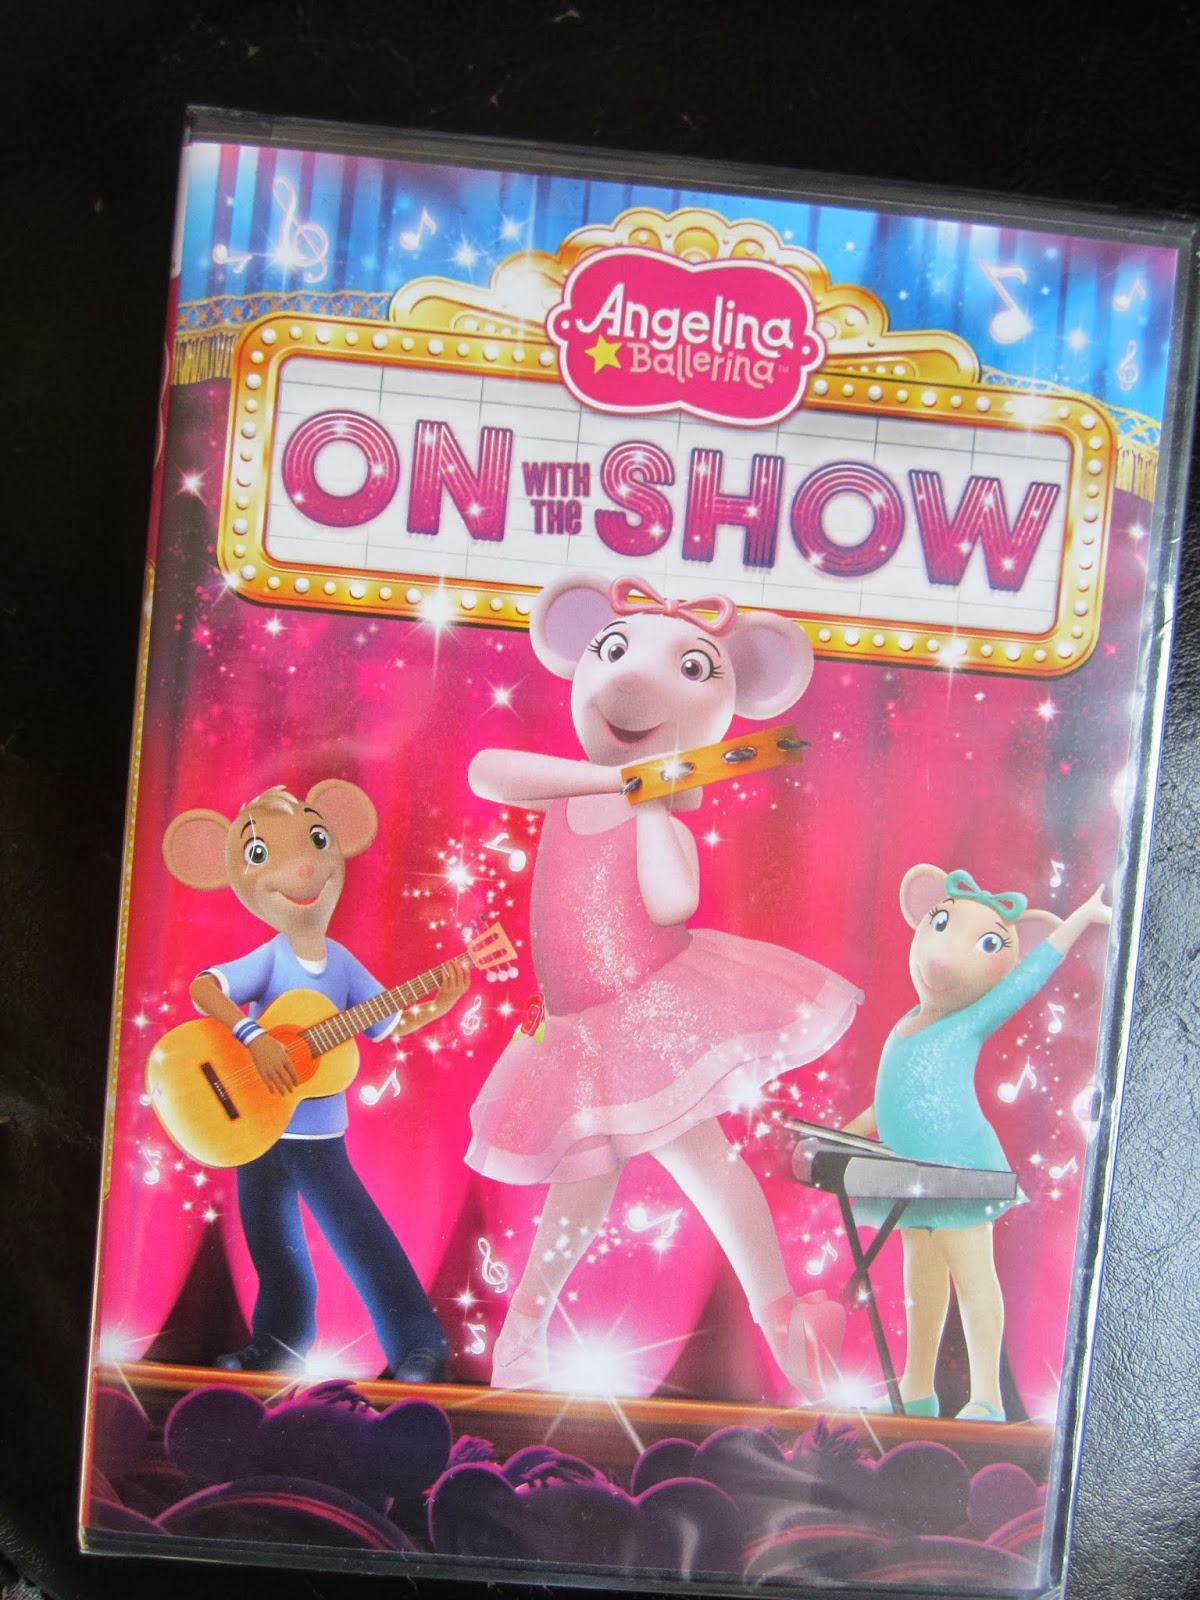 Angelina Ballerina On With The Show Dvd Review And Giveaway